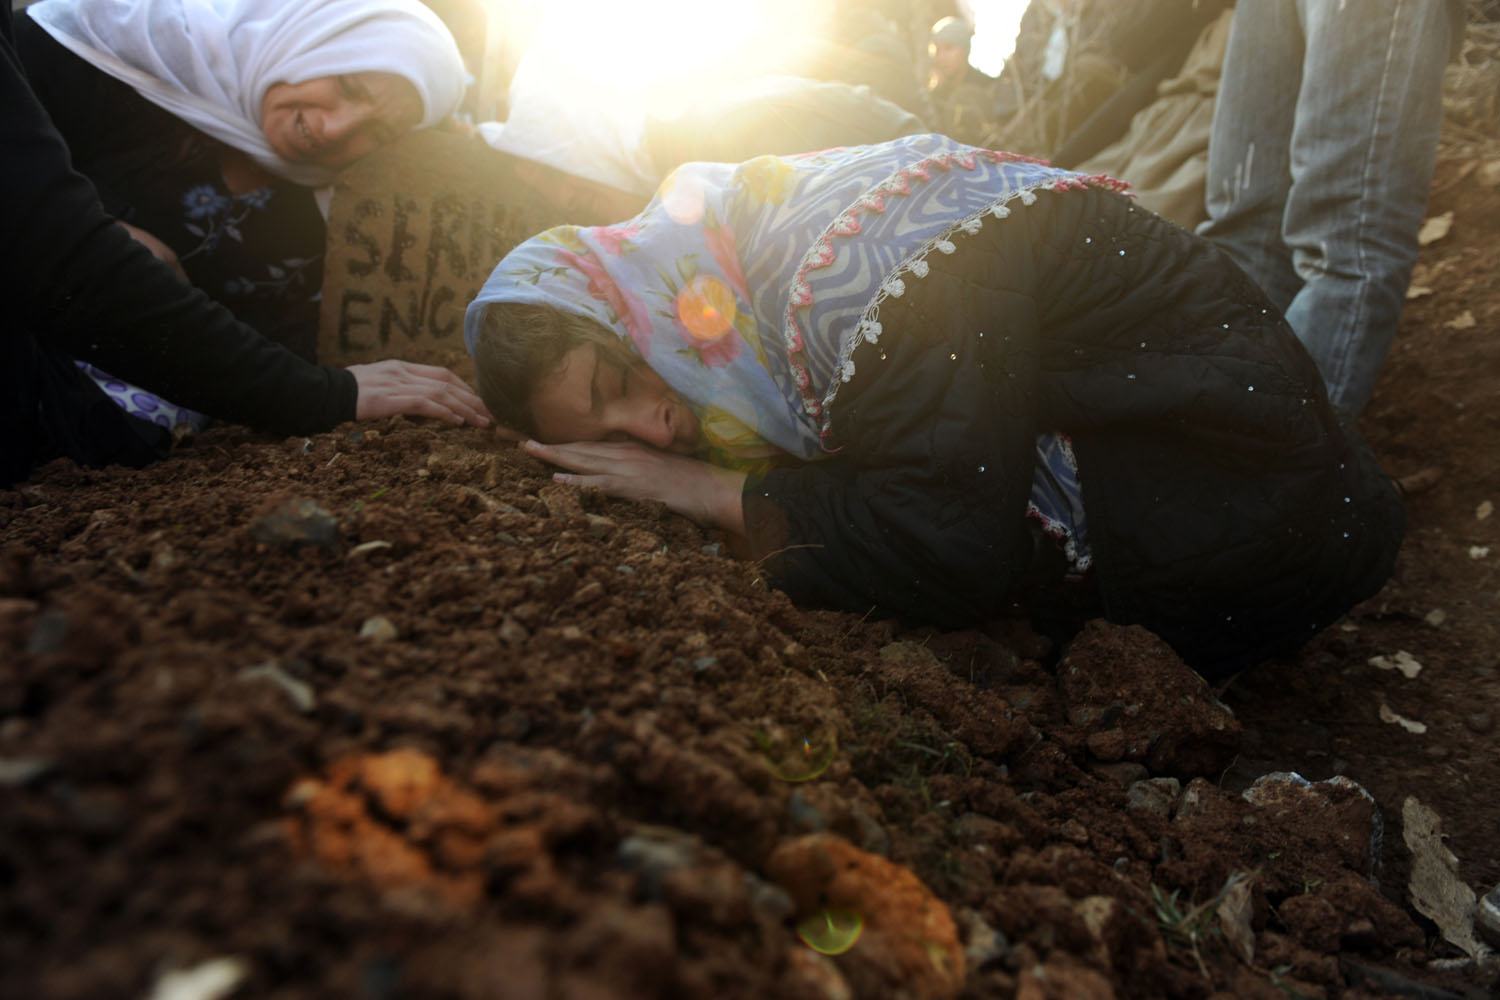 Women mourn for victims of a Turkish air raid at the Gulyazi Village cemetery in Sirnak province, Turkey, Dec. 30, 2011.